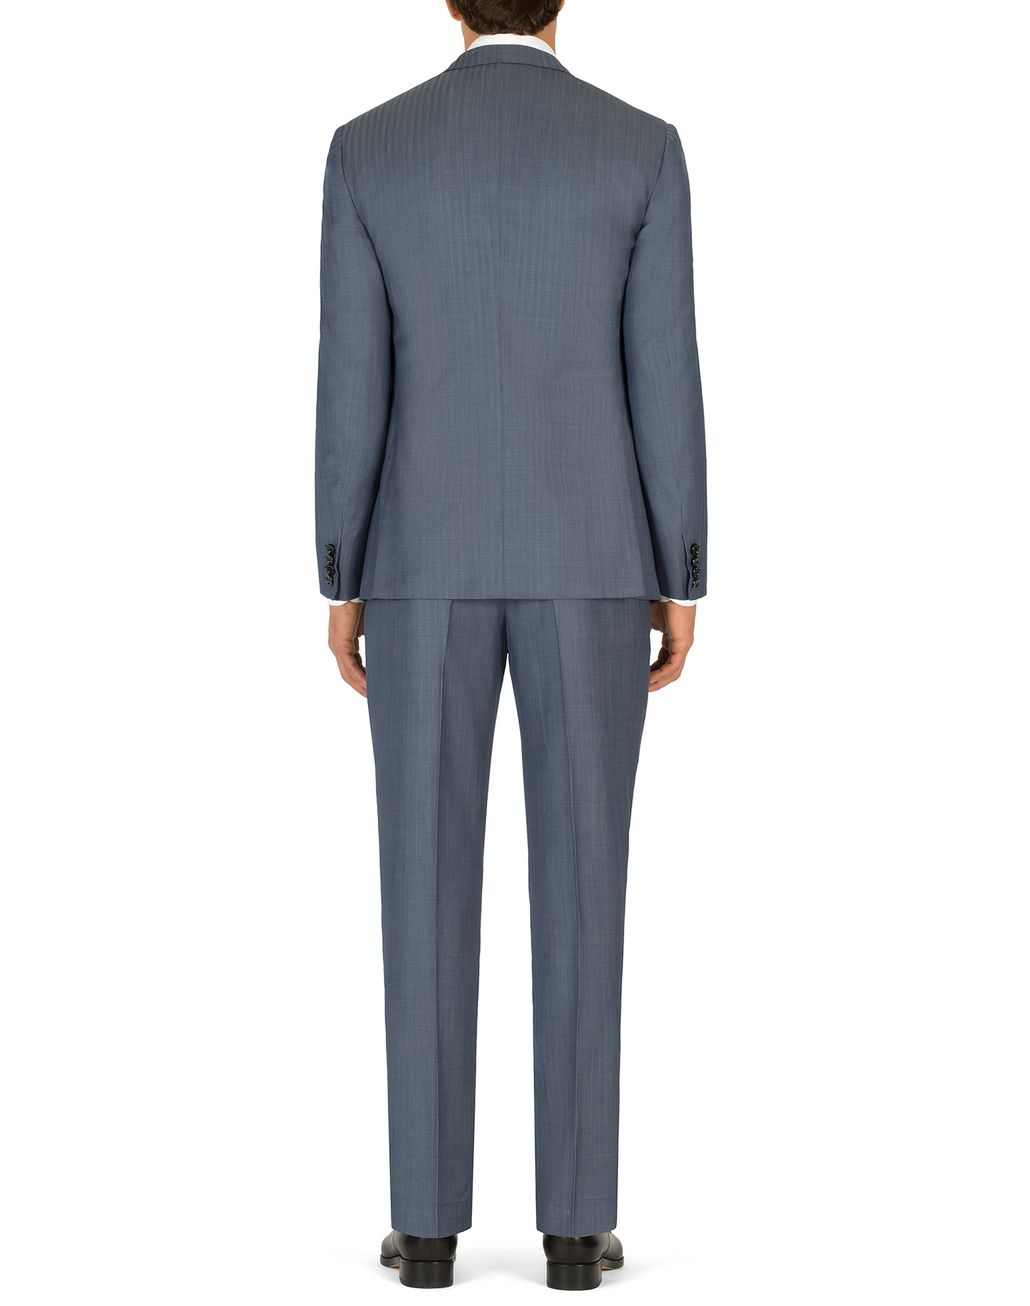 "BRIONI Hellblauer Anzug ""Ravello"" mit Micro-Fischgrätmuster   Suits & Jackets [*** pickupInStoreShippingNotGuaranteed_info ***] d"